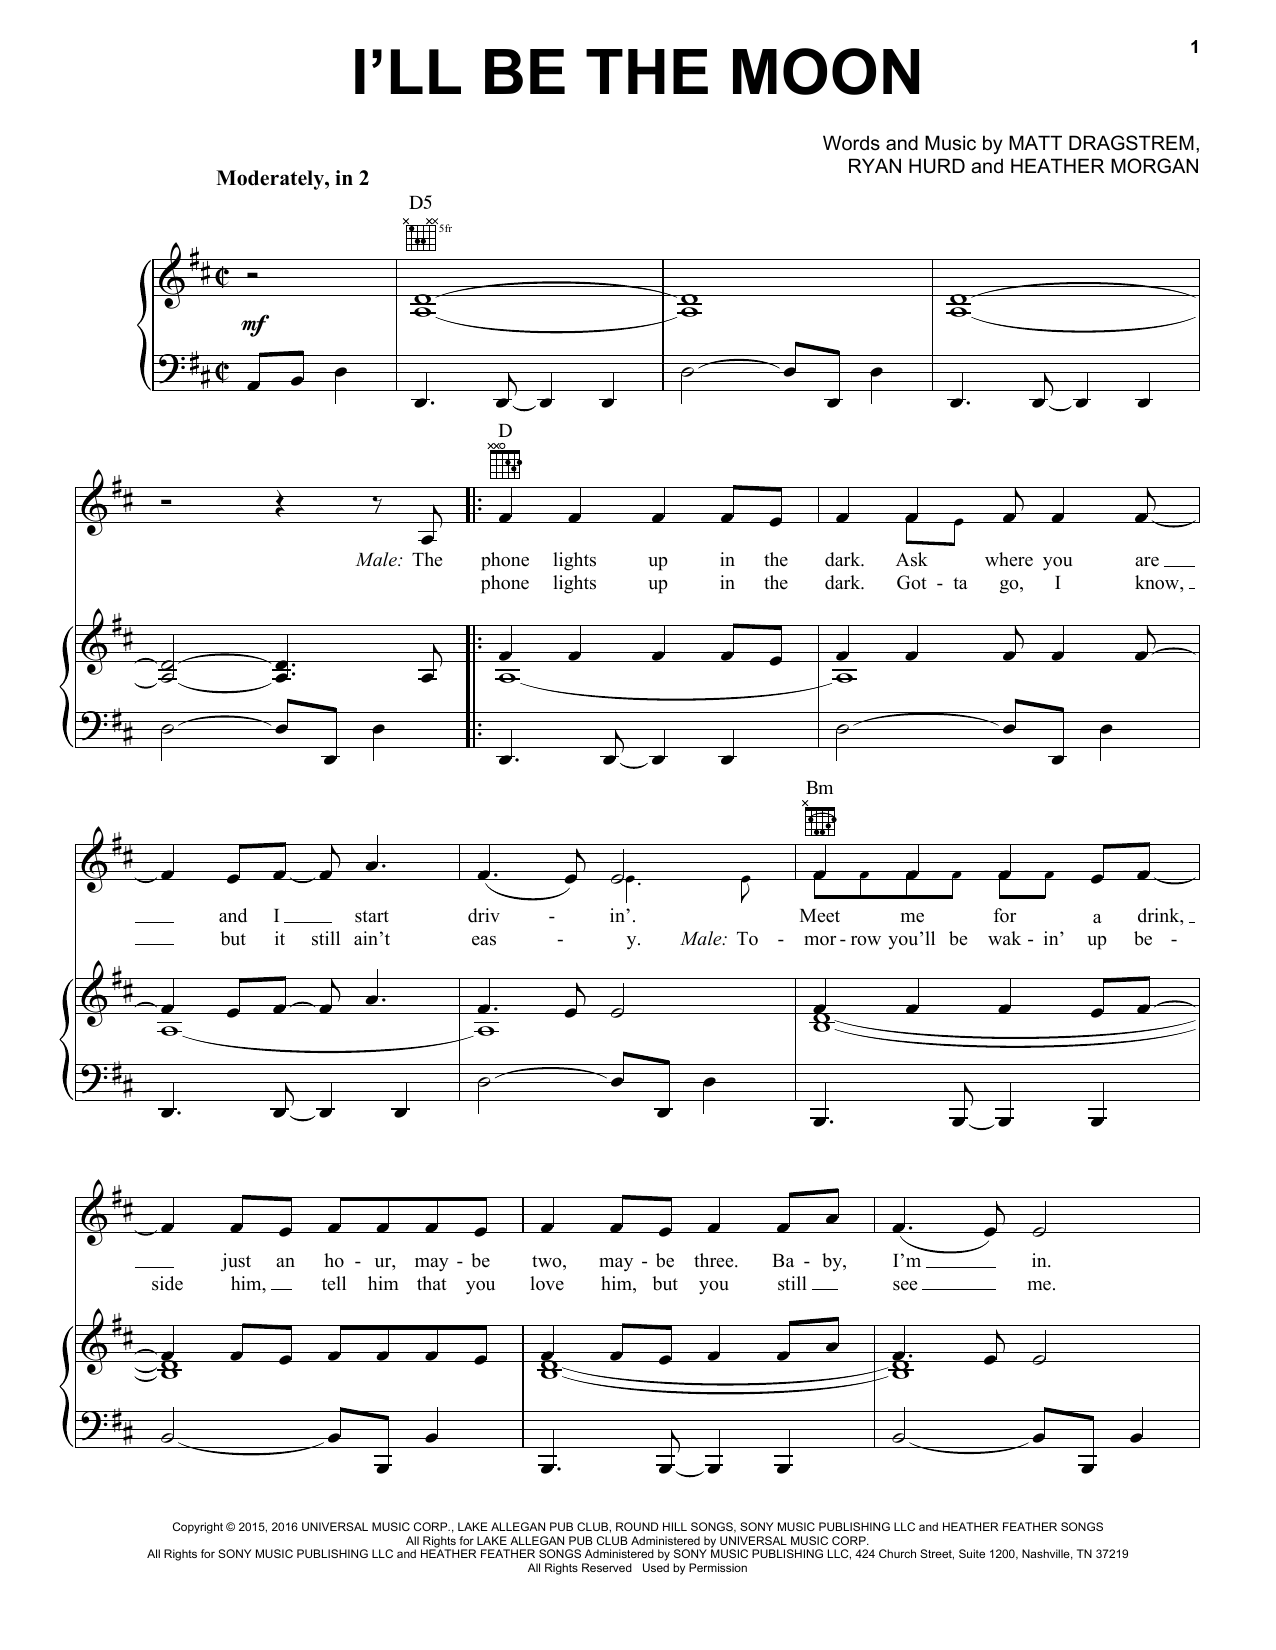 Dierks Bentley & Maren Morris I'll Be The Moon sheet music notes and chords. Download Printable PDF.